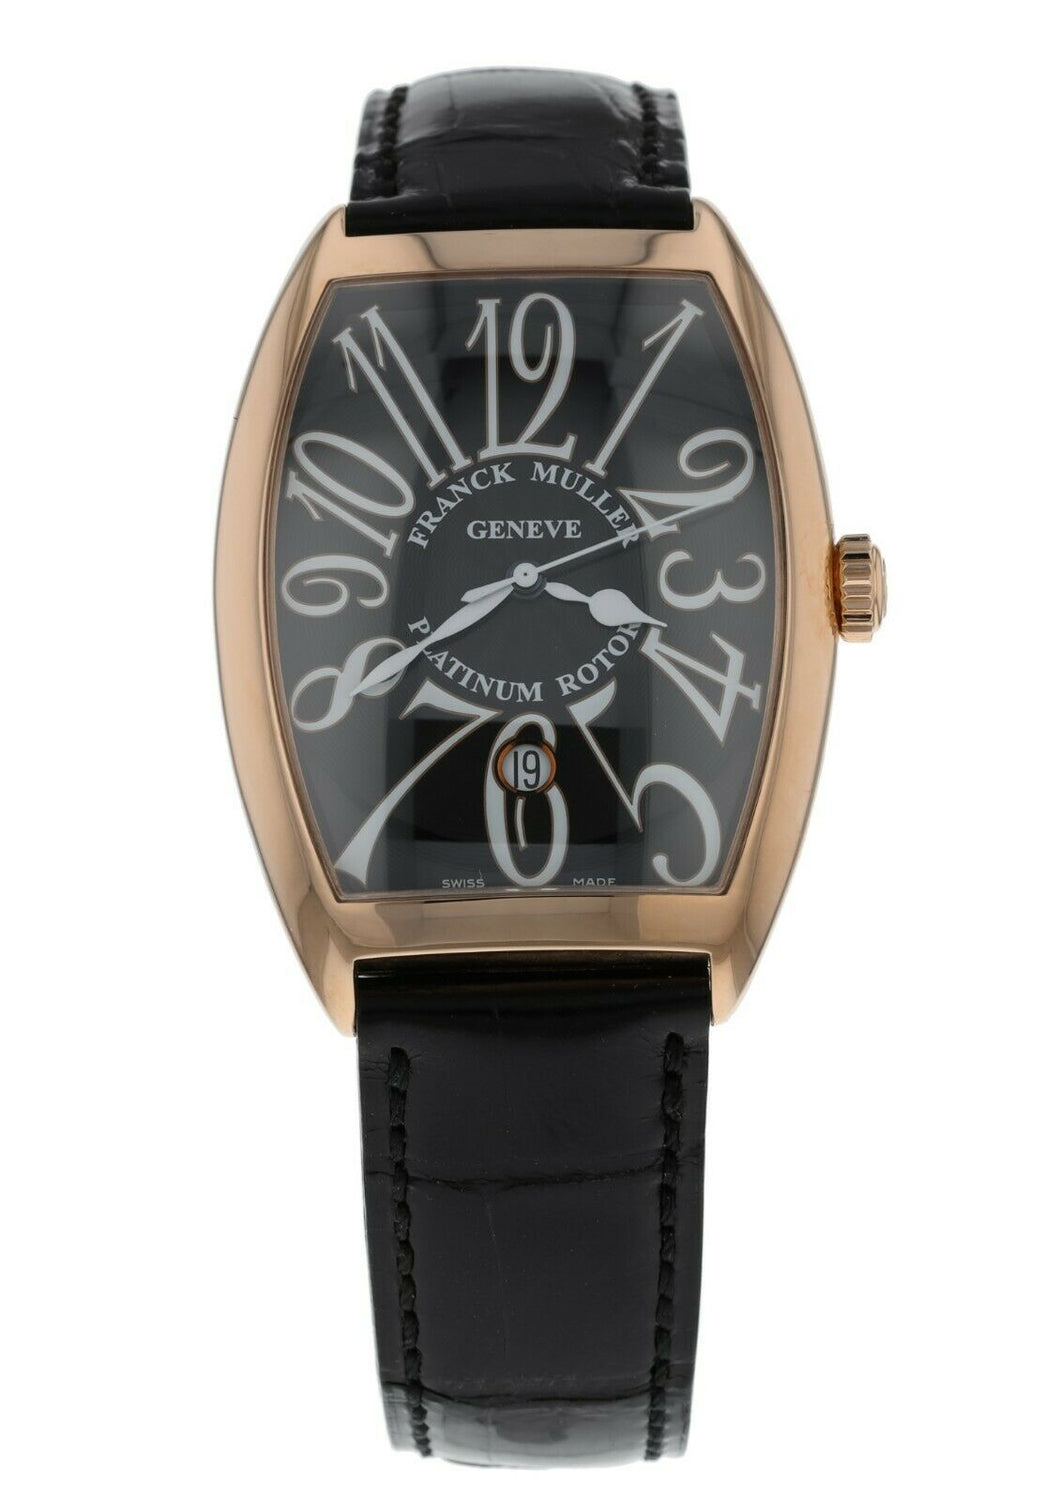 Franck Muller Cintree Curvex Automatic 18k Rose Gold Men's Watch 6850 B SC DT VA